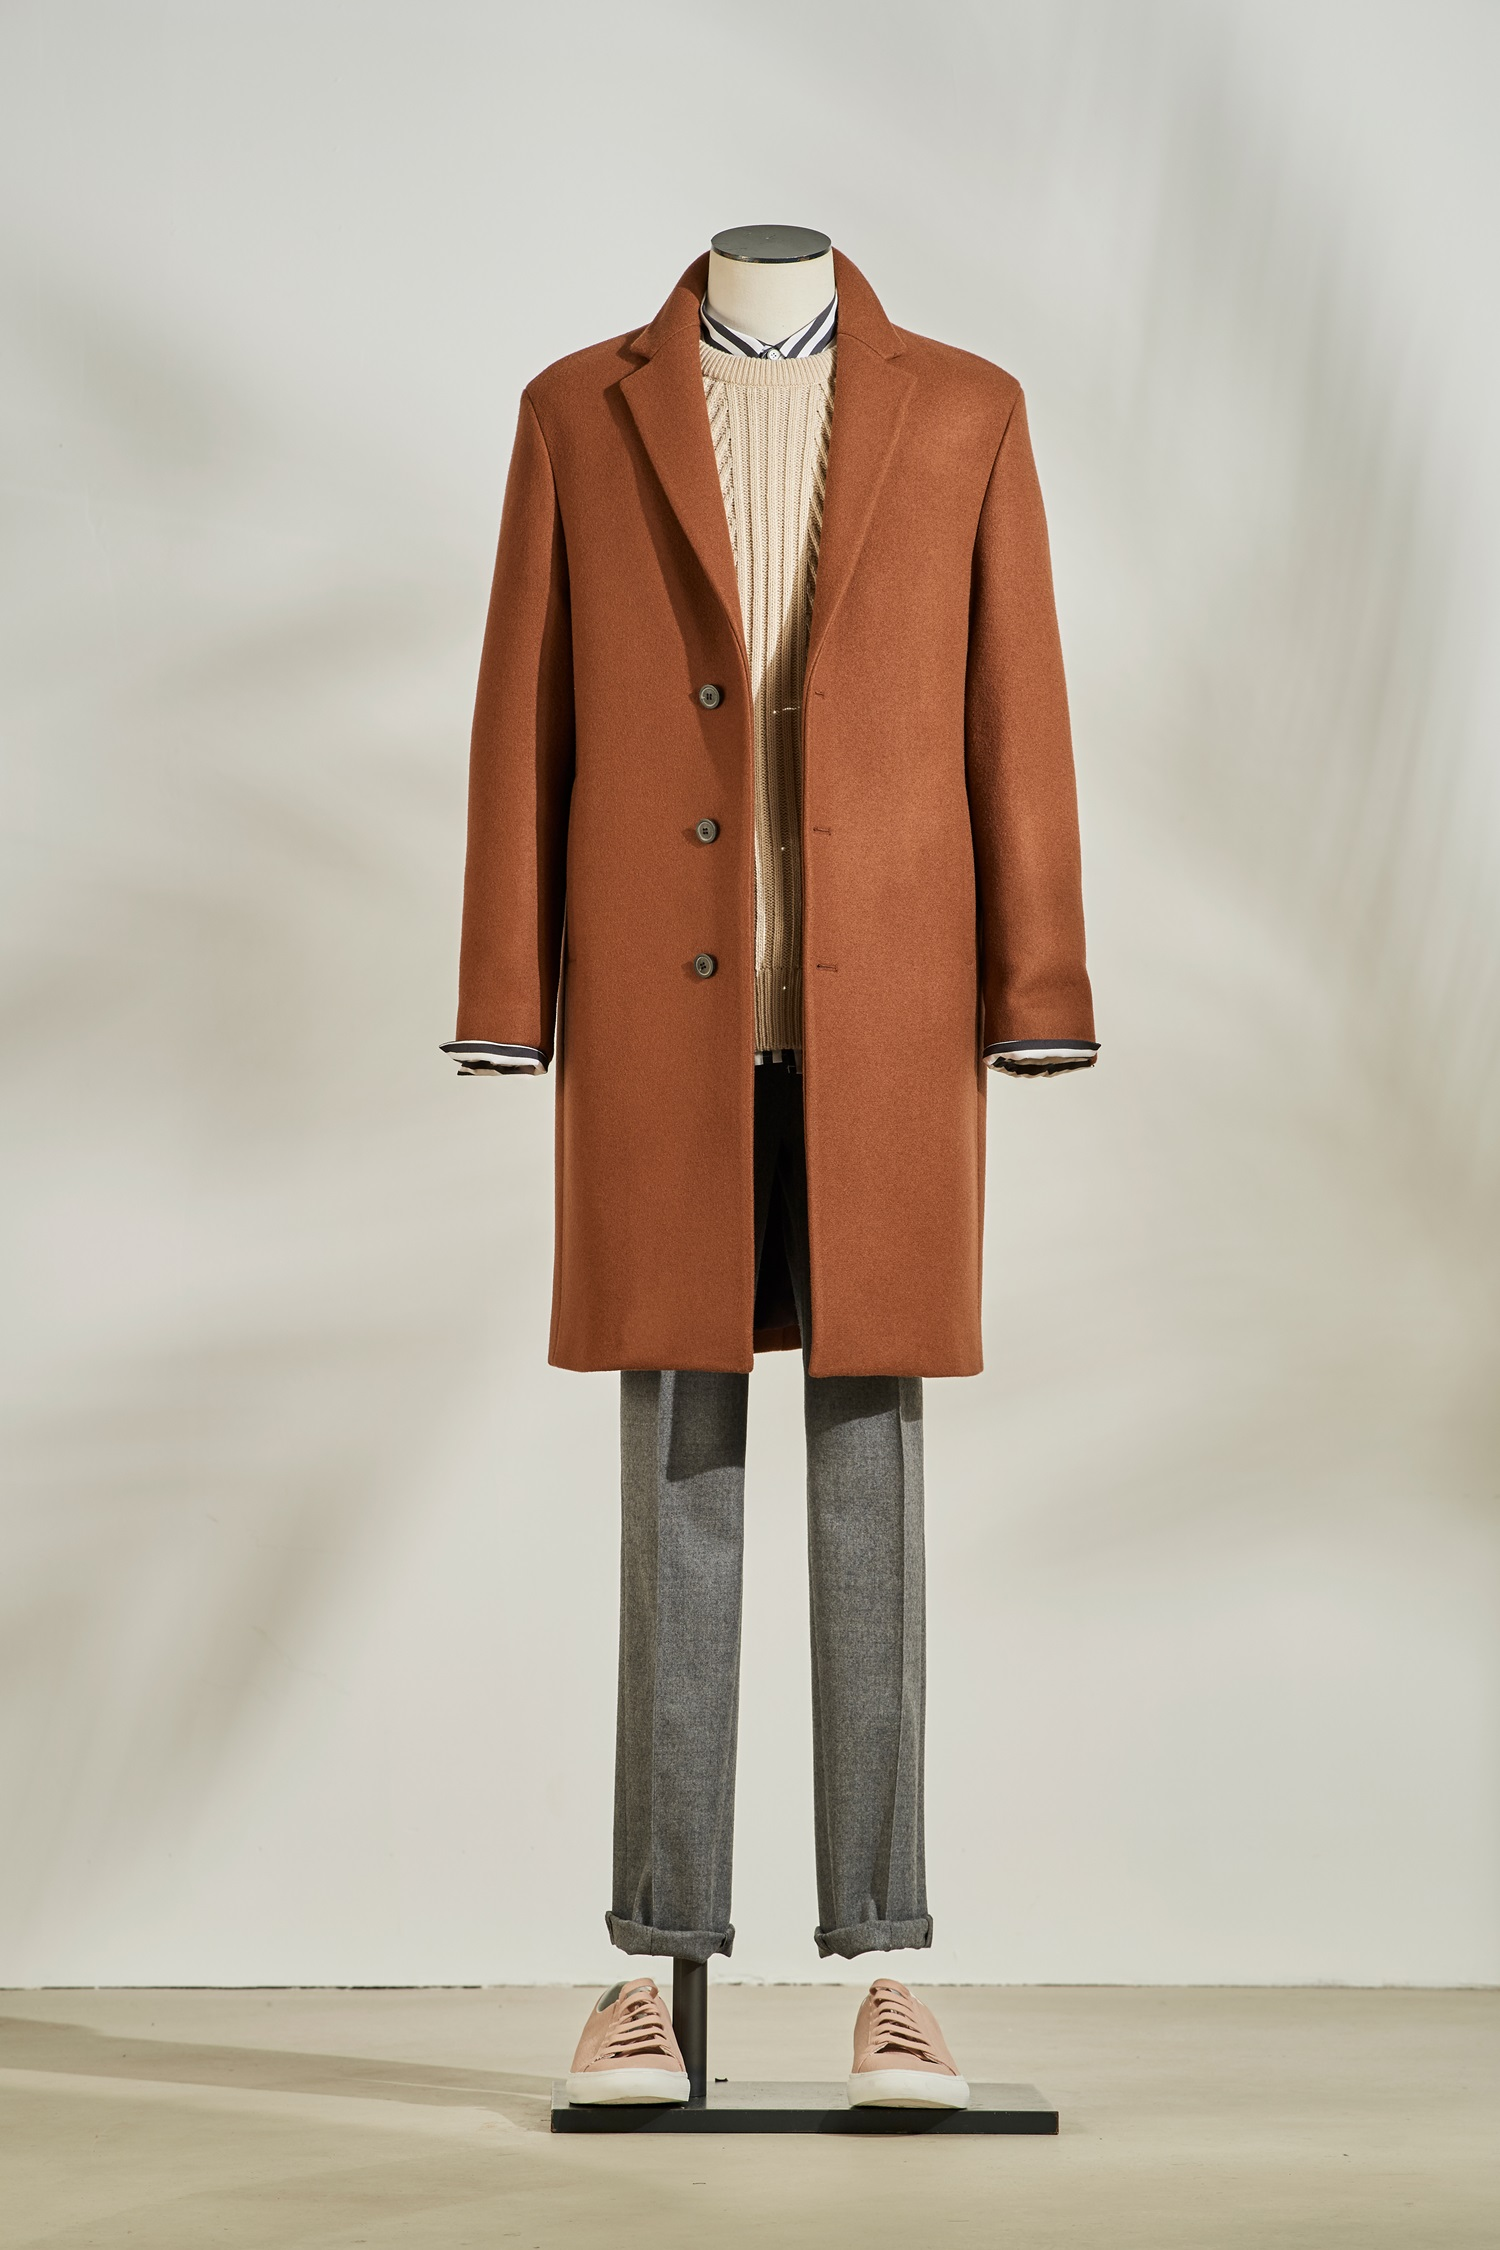 Three Botton Half Coat #Brick